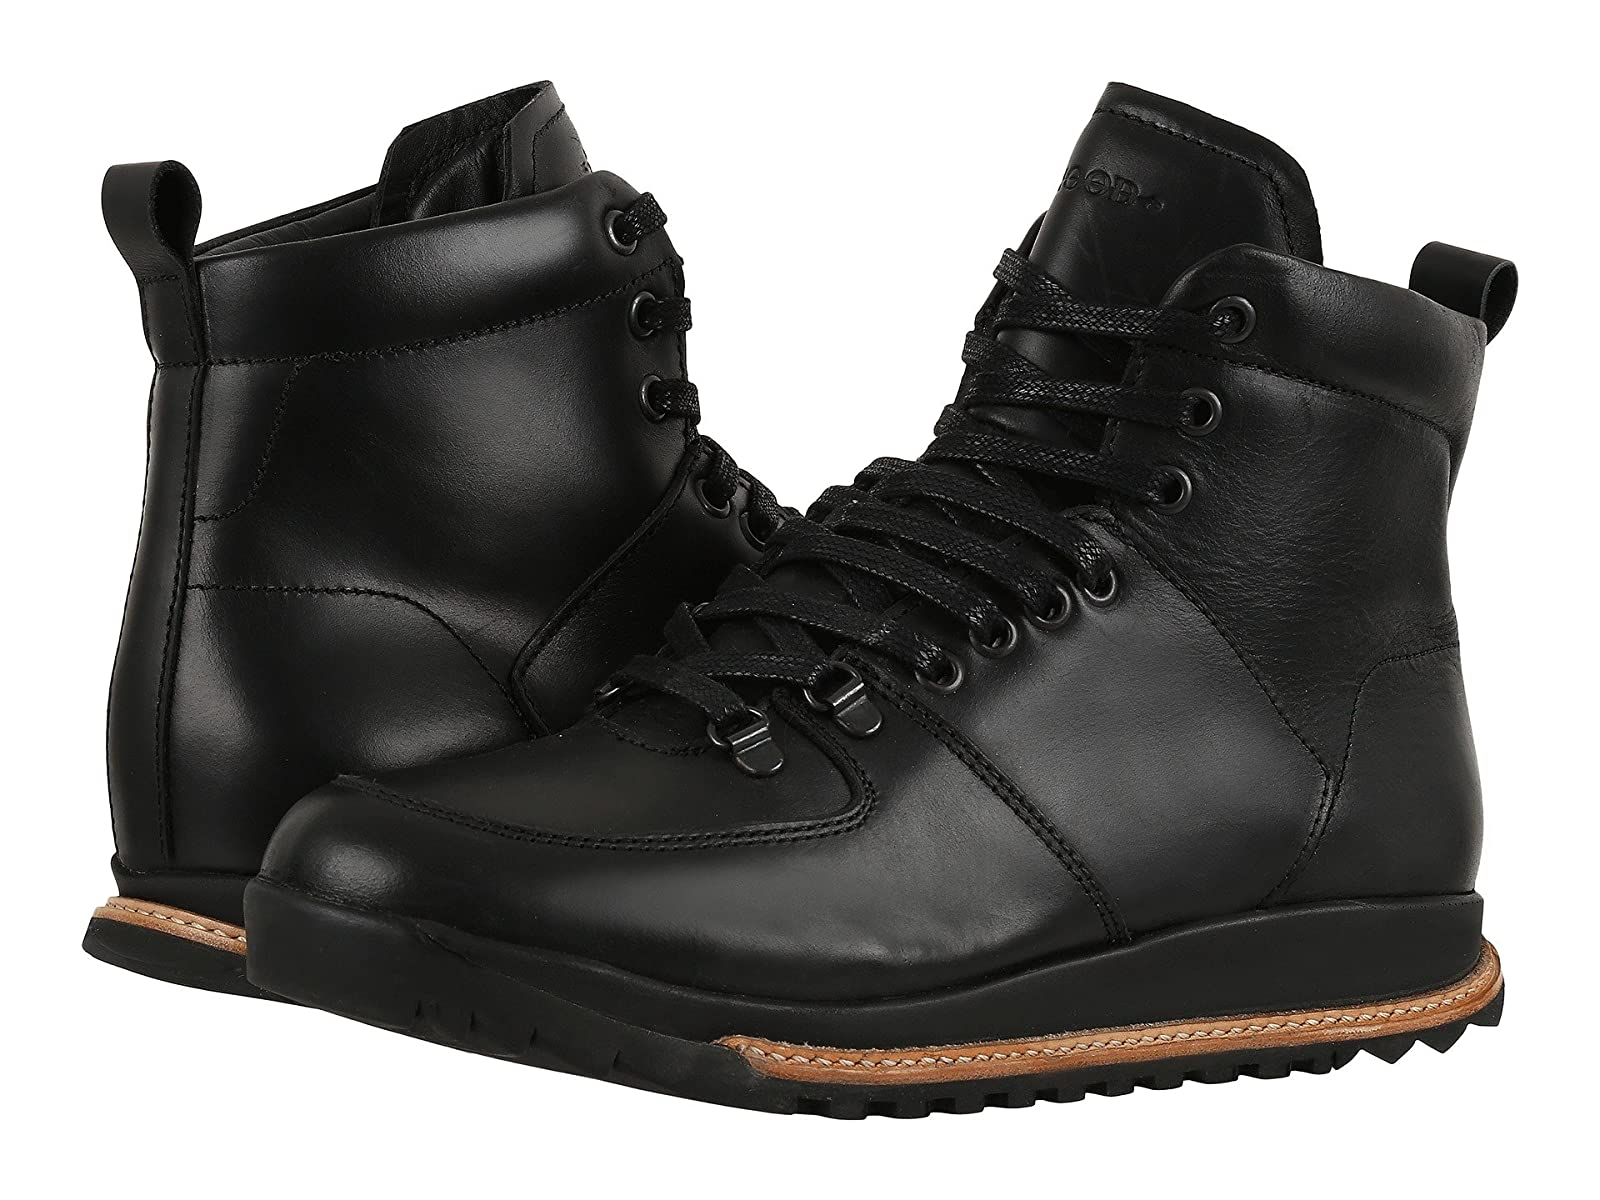 HOOD Rubber Company HollistonCheap and distinctive eye-catching shoes